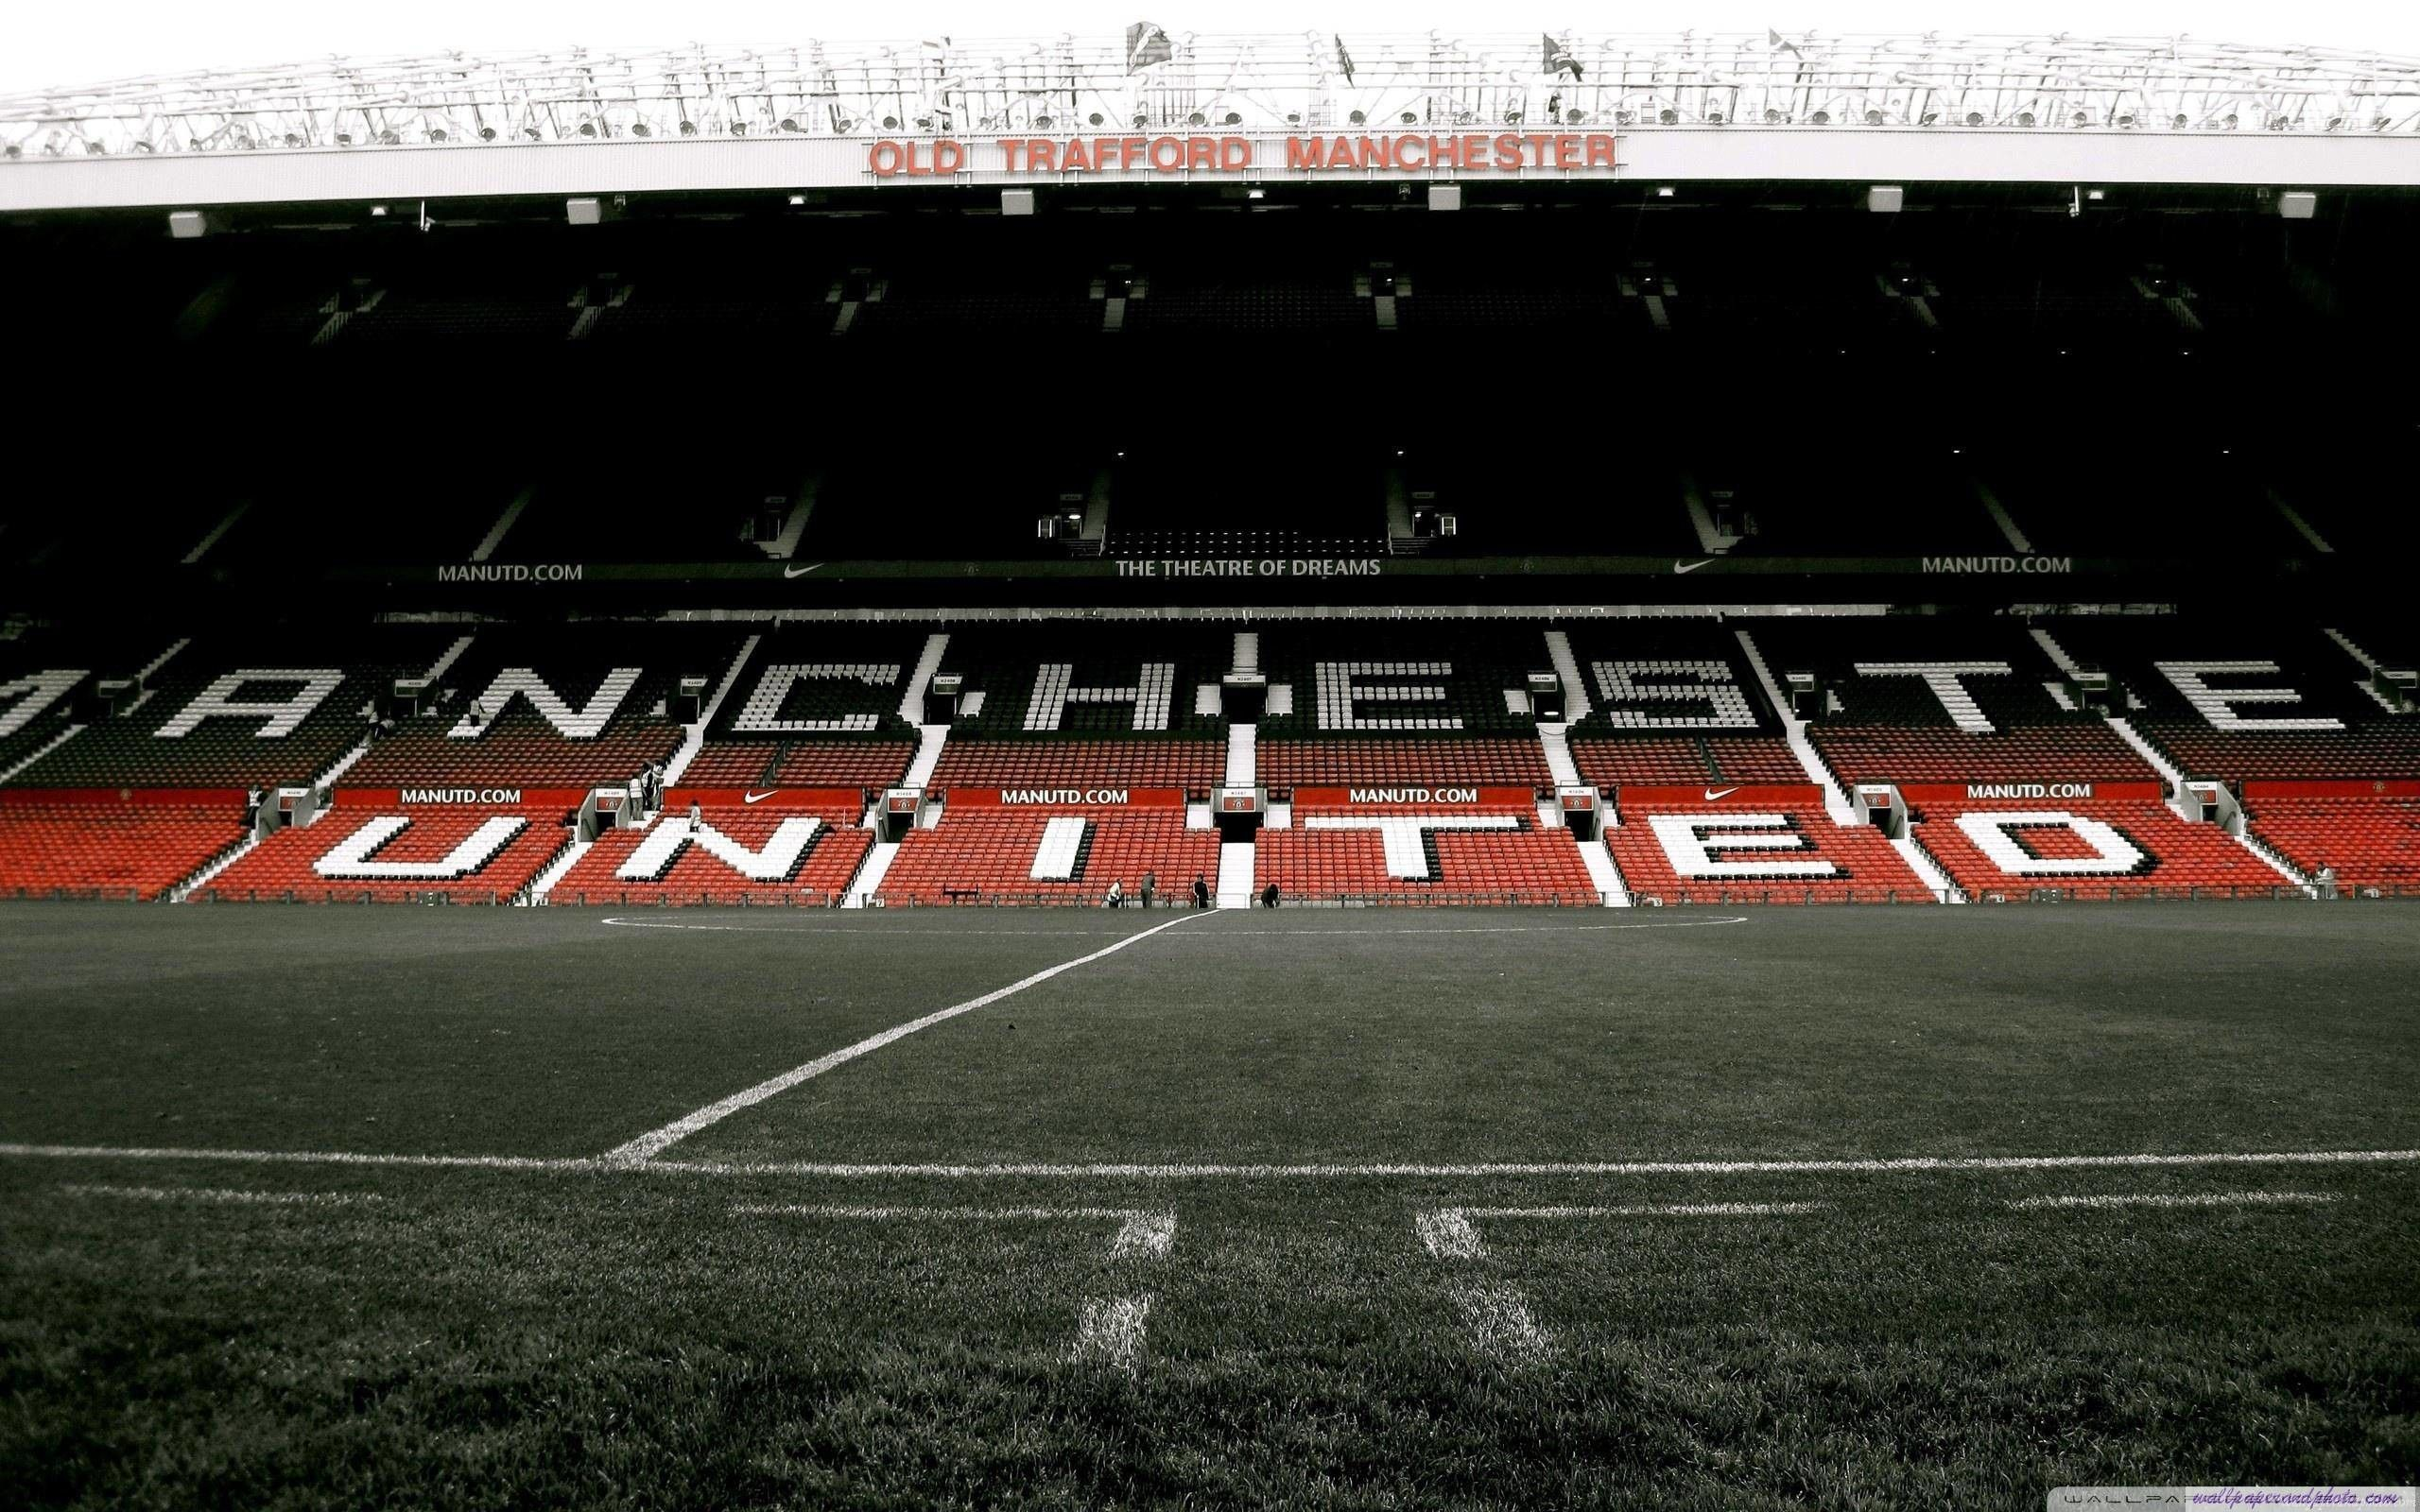 2560x1600 Manchester United Stadium Hd 16 9 16 10 Desktop Wallpaper High Manchester United Wallpaper Manchester United Stadium Manchester United Logo